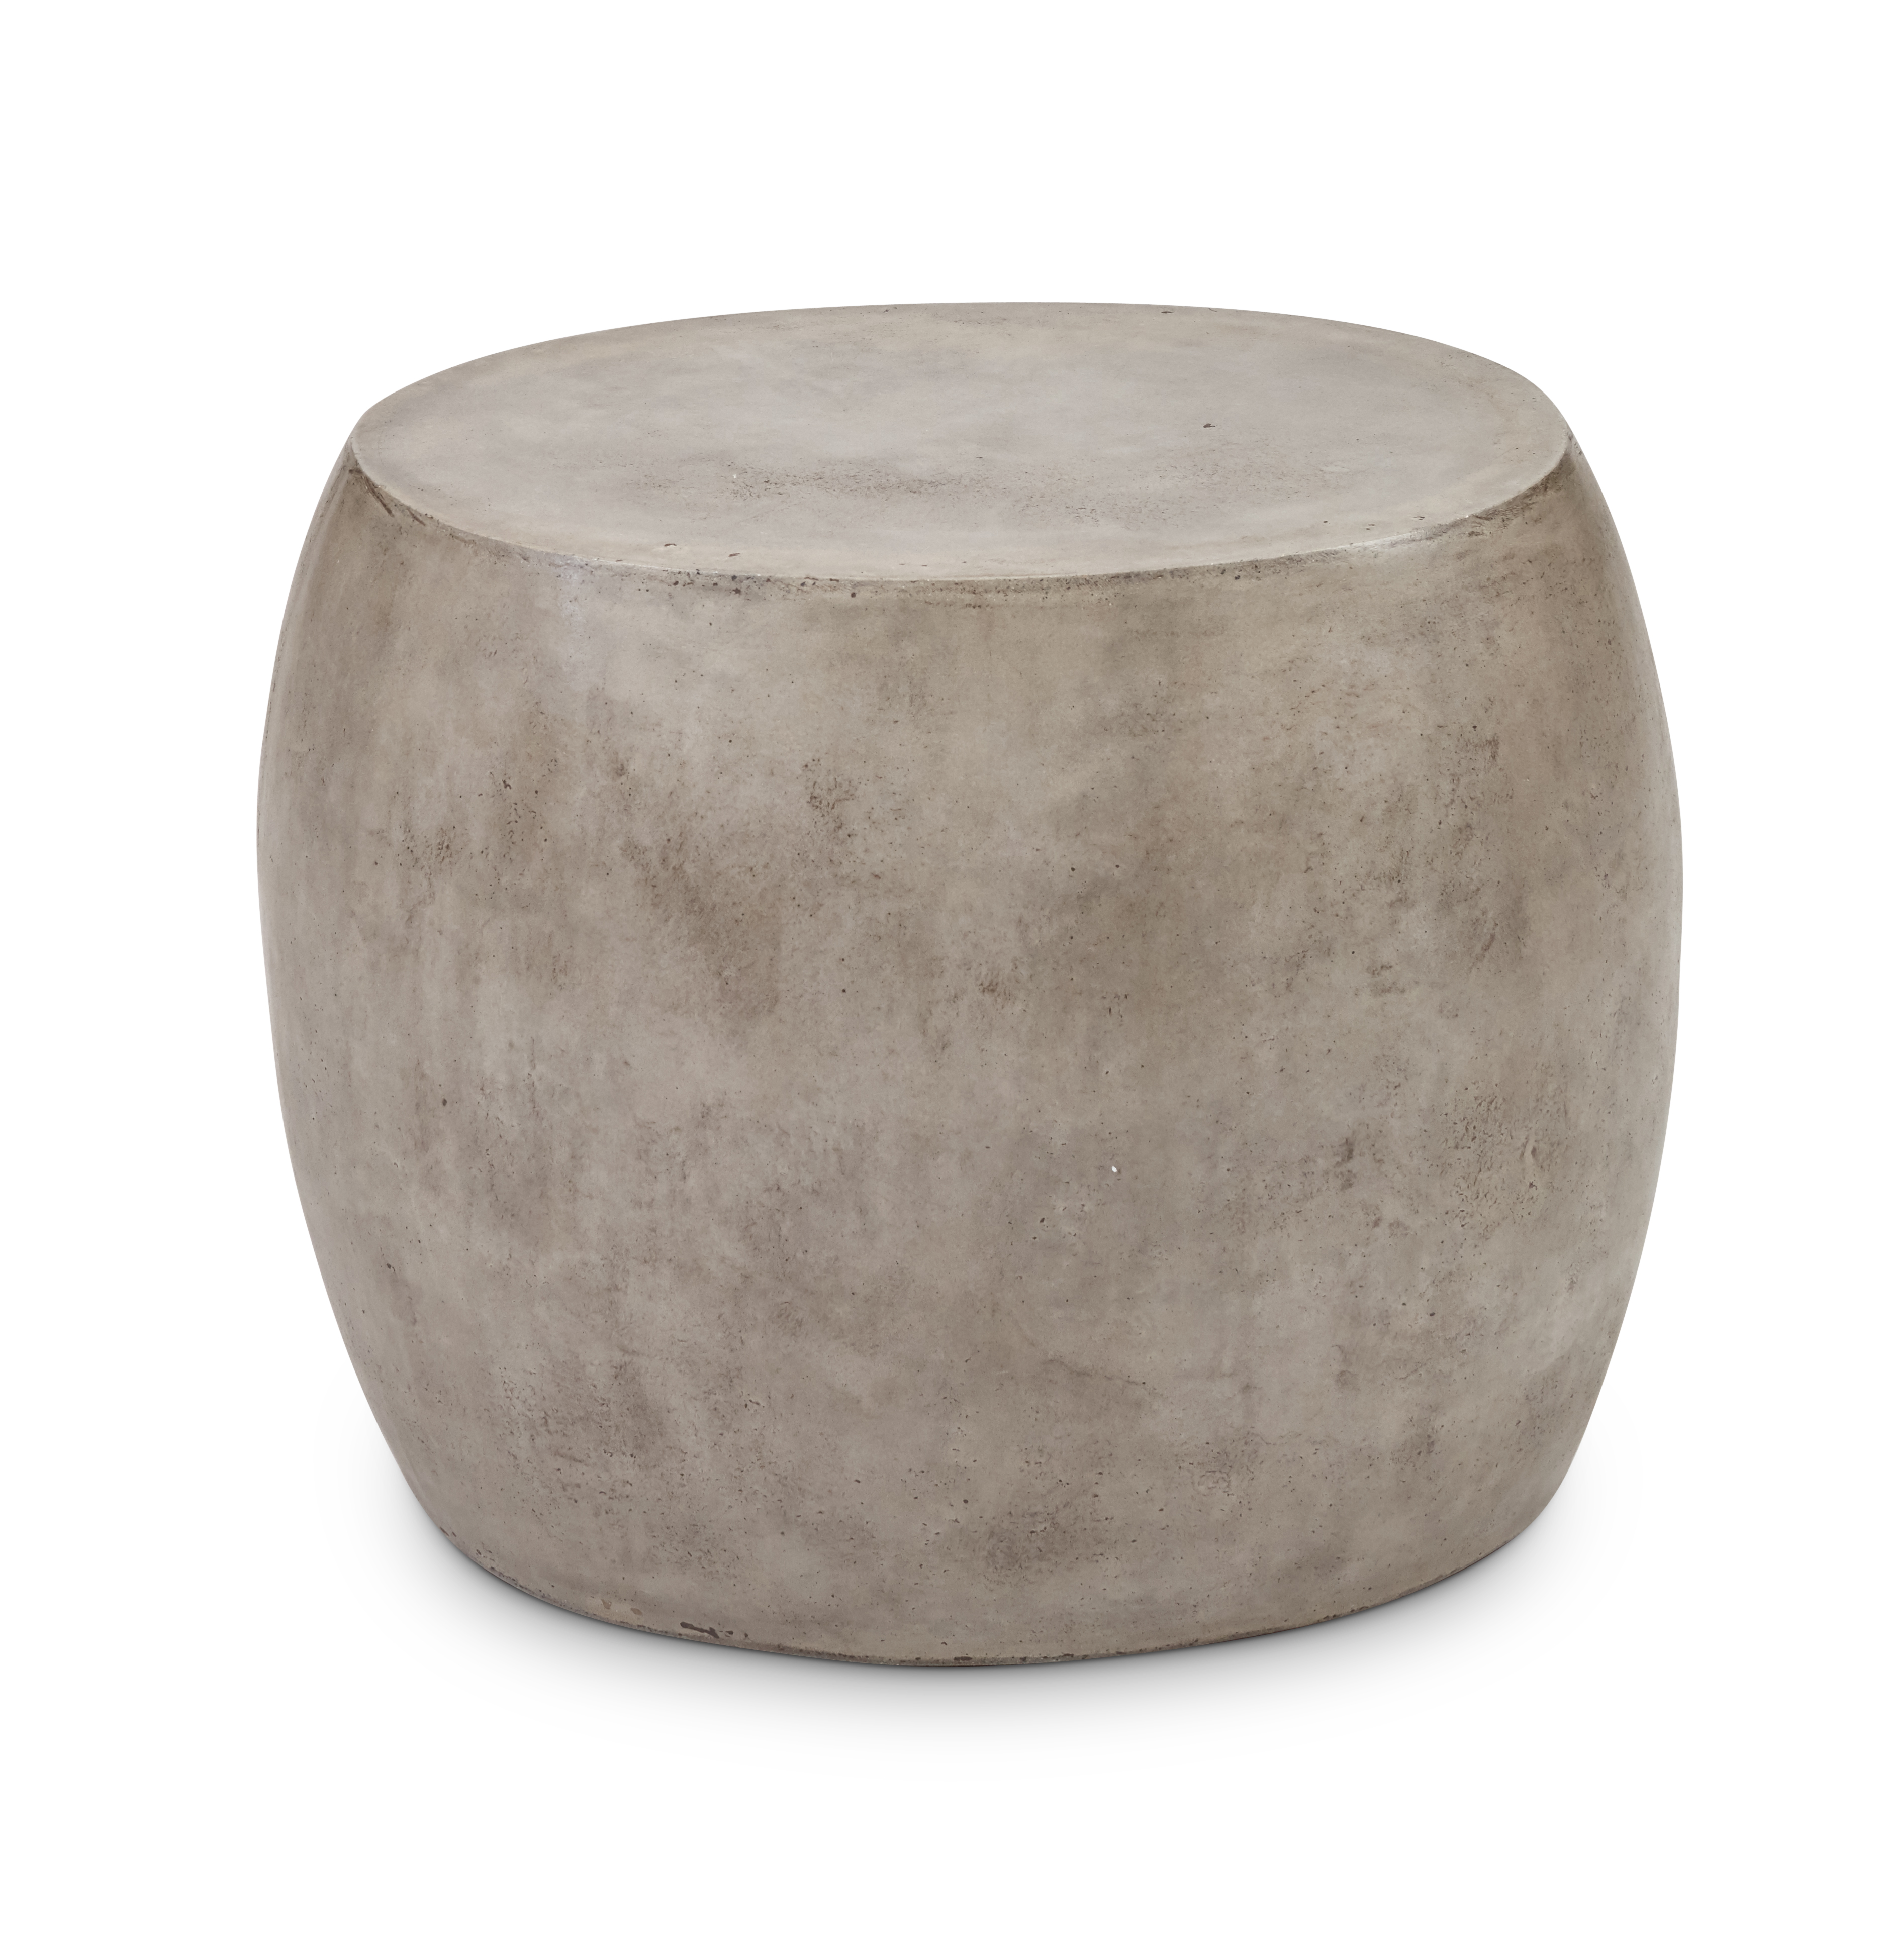 pebble urbia furniture vgs outdoor side table concrete occasional tables gray end mixx pier one dining room nautical inspired lighting white sliding door storage cabinet with